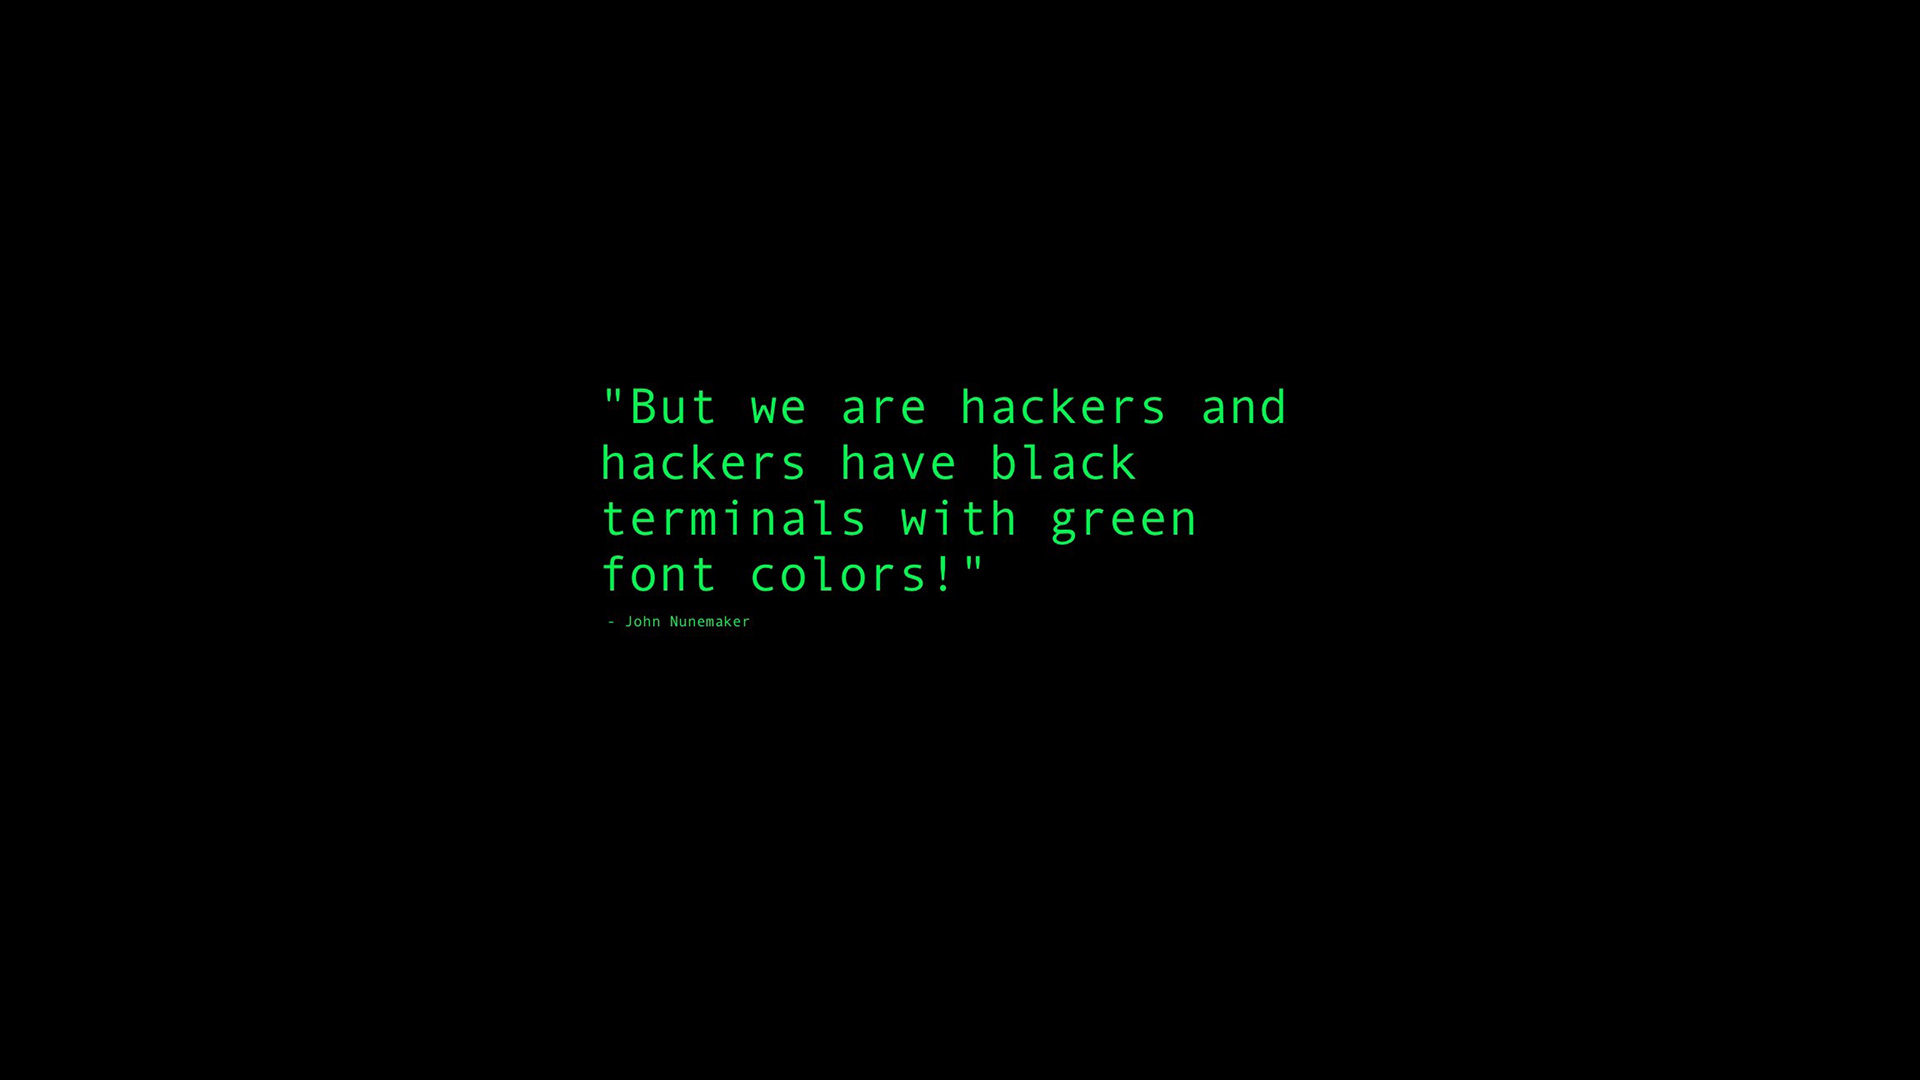 1920x1080 Black Terminals With Green Font Colors Quote